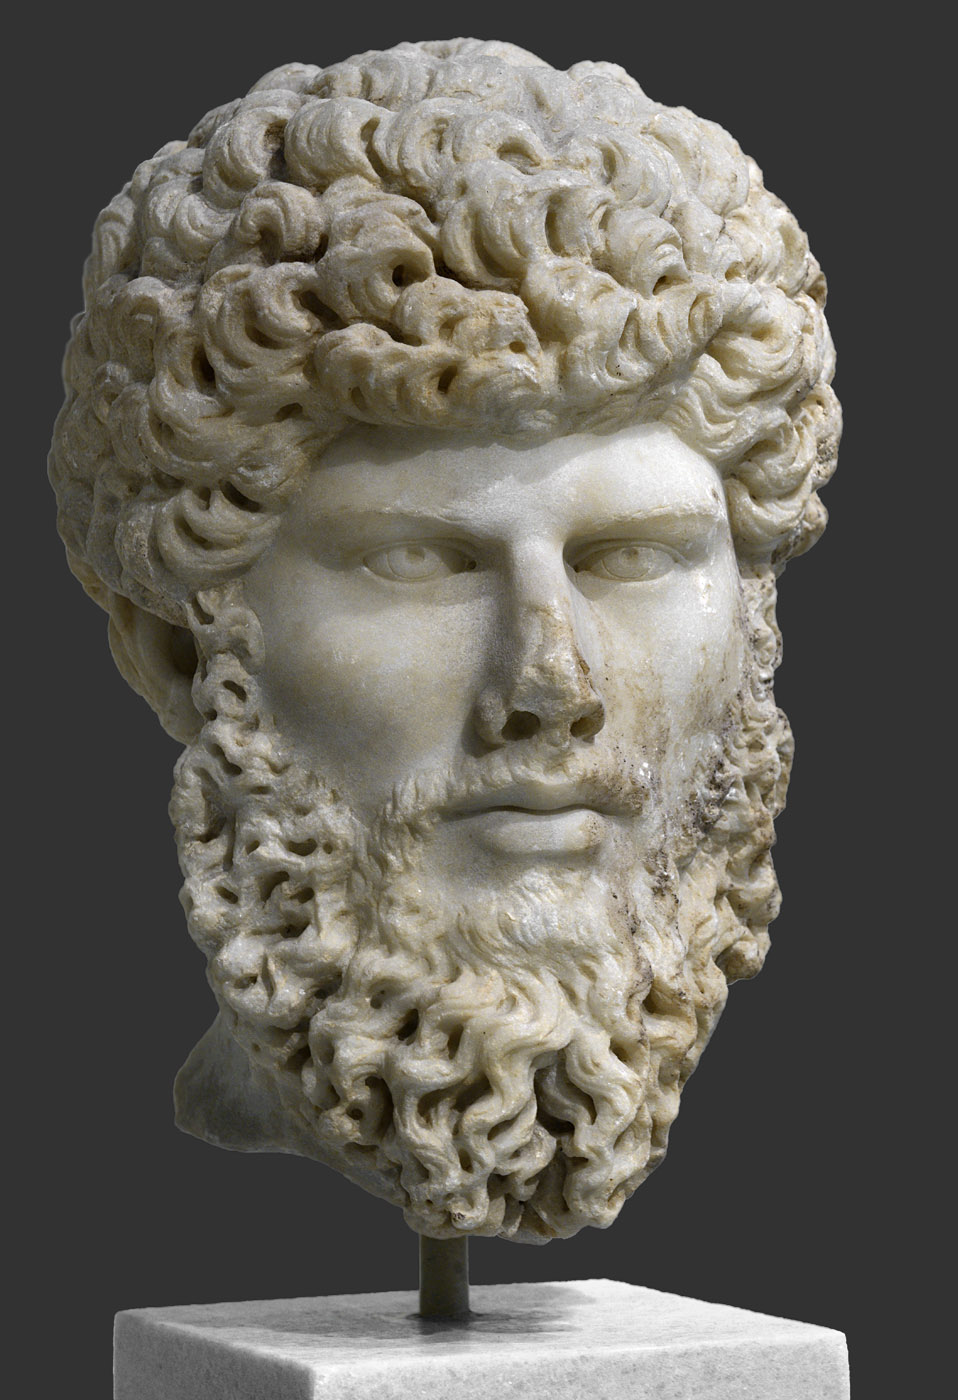 Lucius Verus. Pentelic marble. 161—169 CE. Inv. No. 3740. Athens, National Archaeological Museum